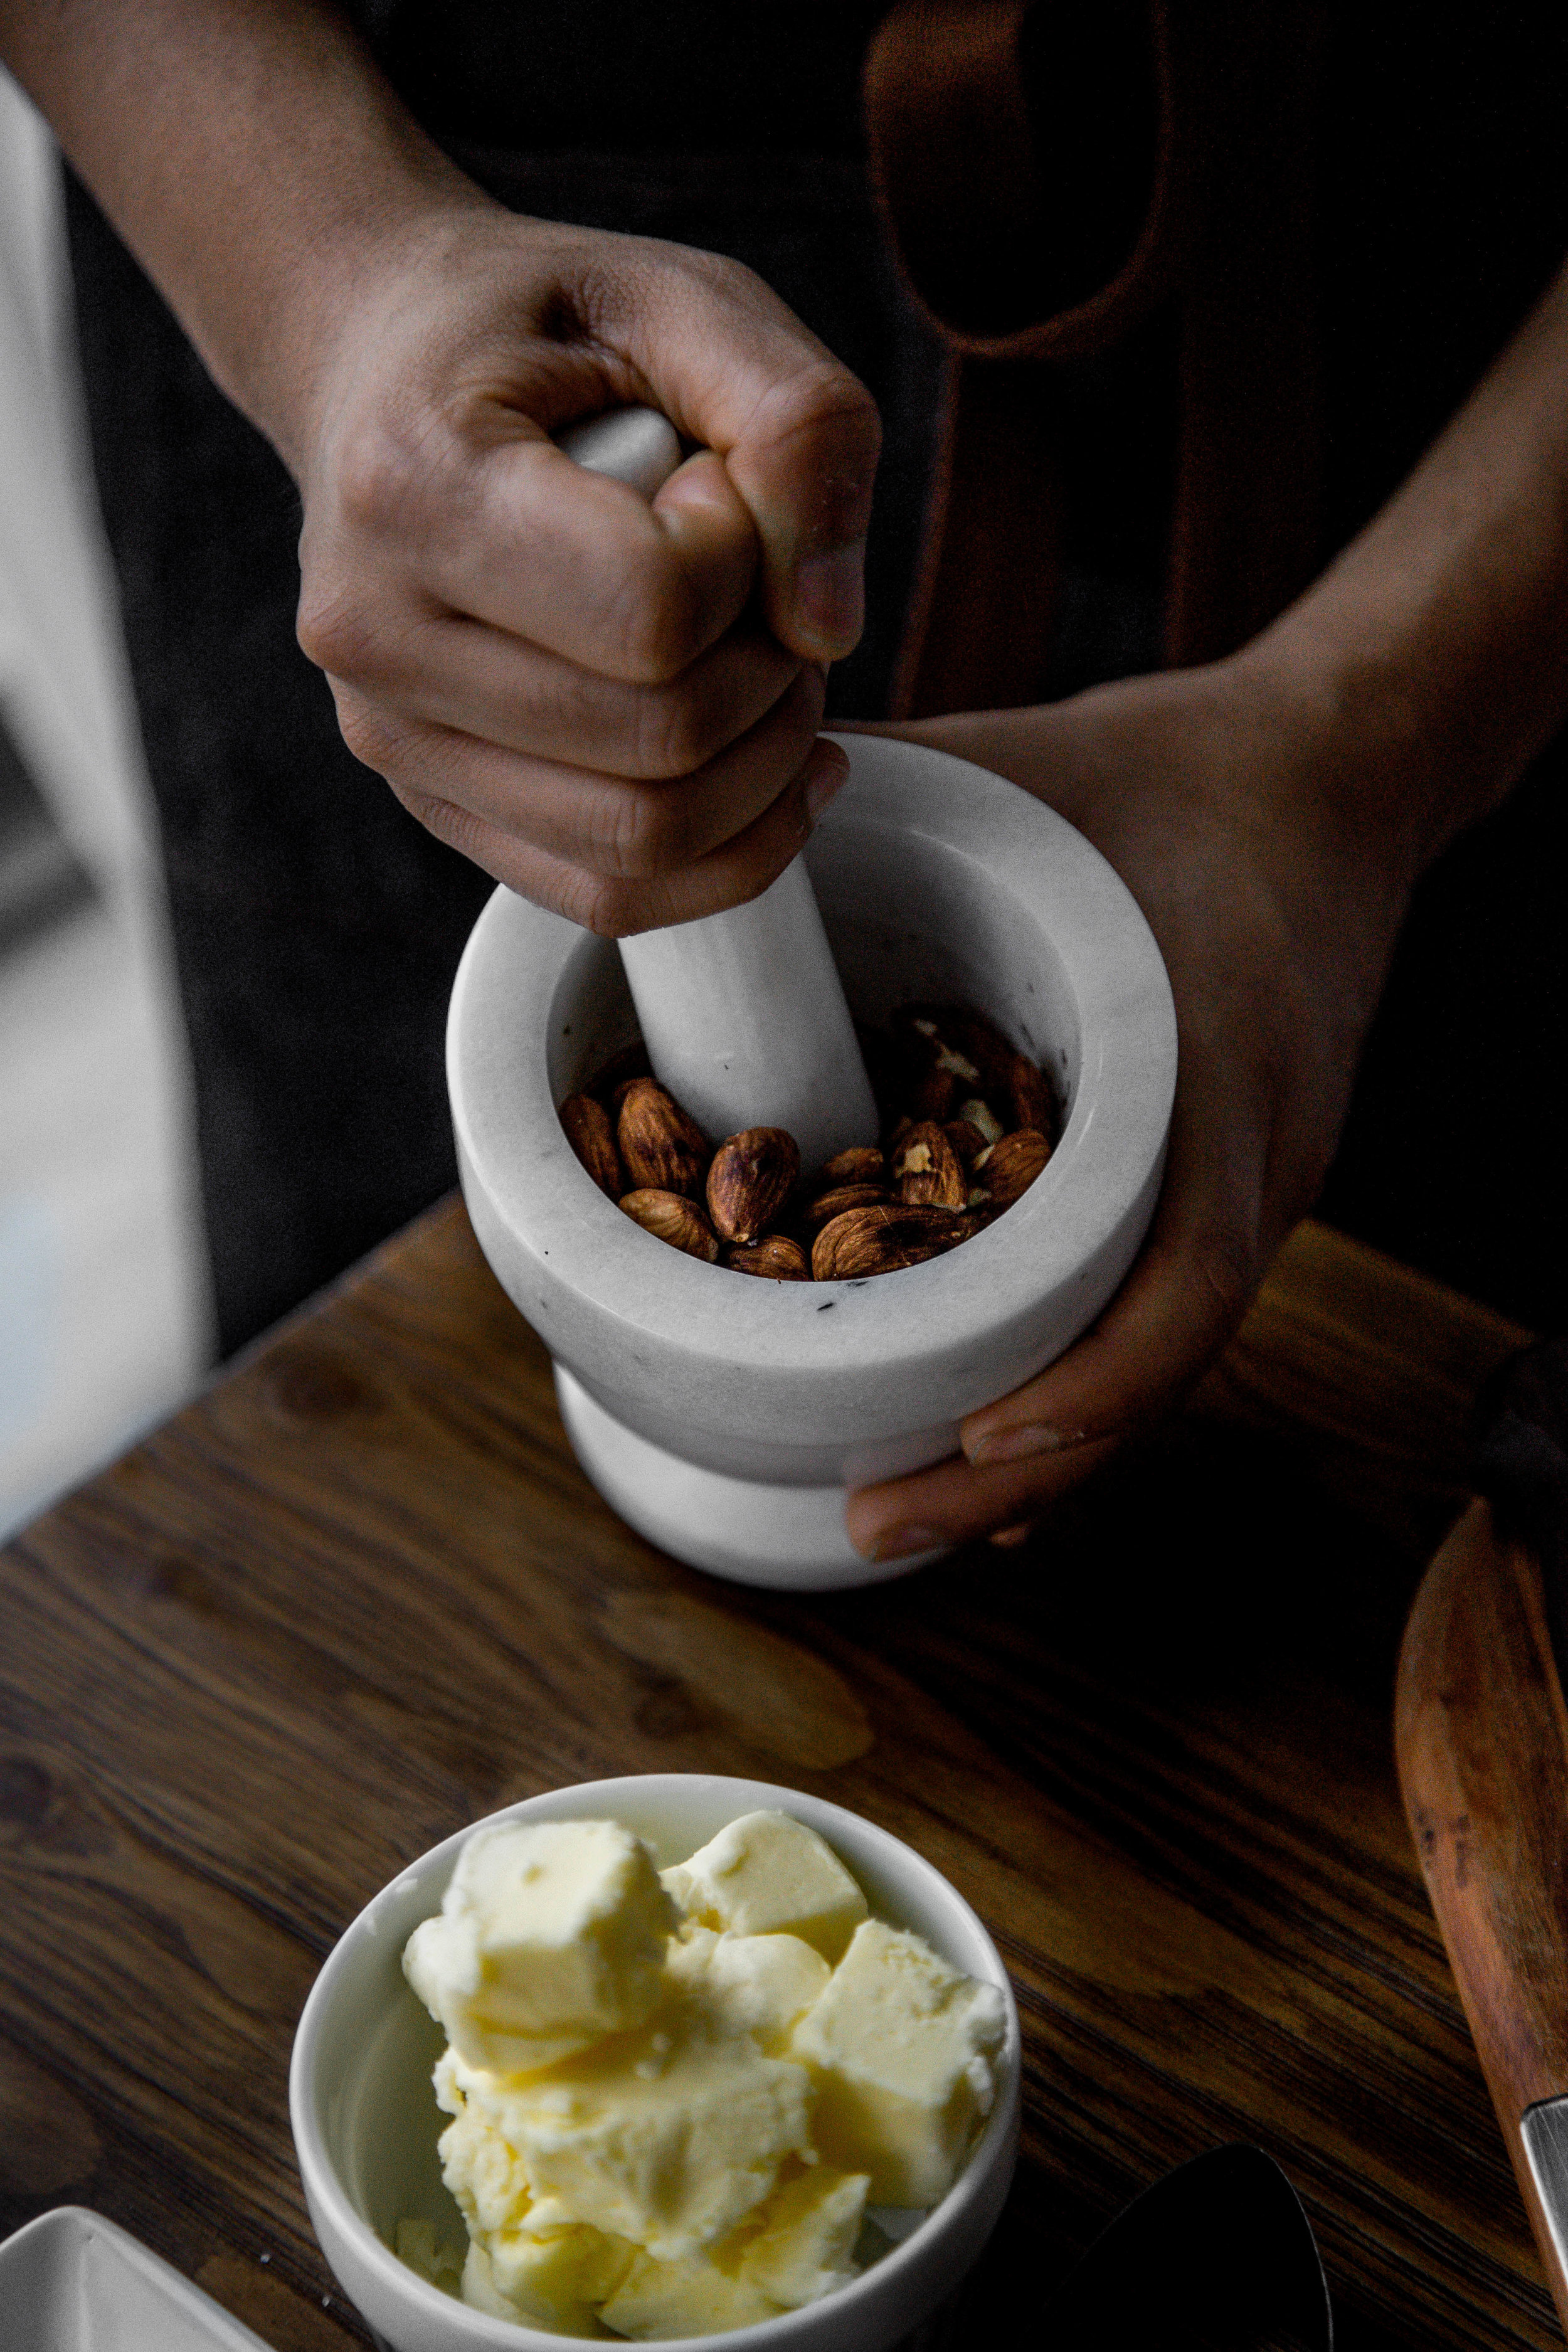 step two. - once almonds are cooled, crush using a mortar and pestle and transfer to a mixing bowl. add brown sugar, butter, salt and cinnamon. mix until a smooth paste is formed. set aside in refrigerator.